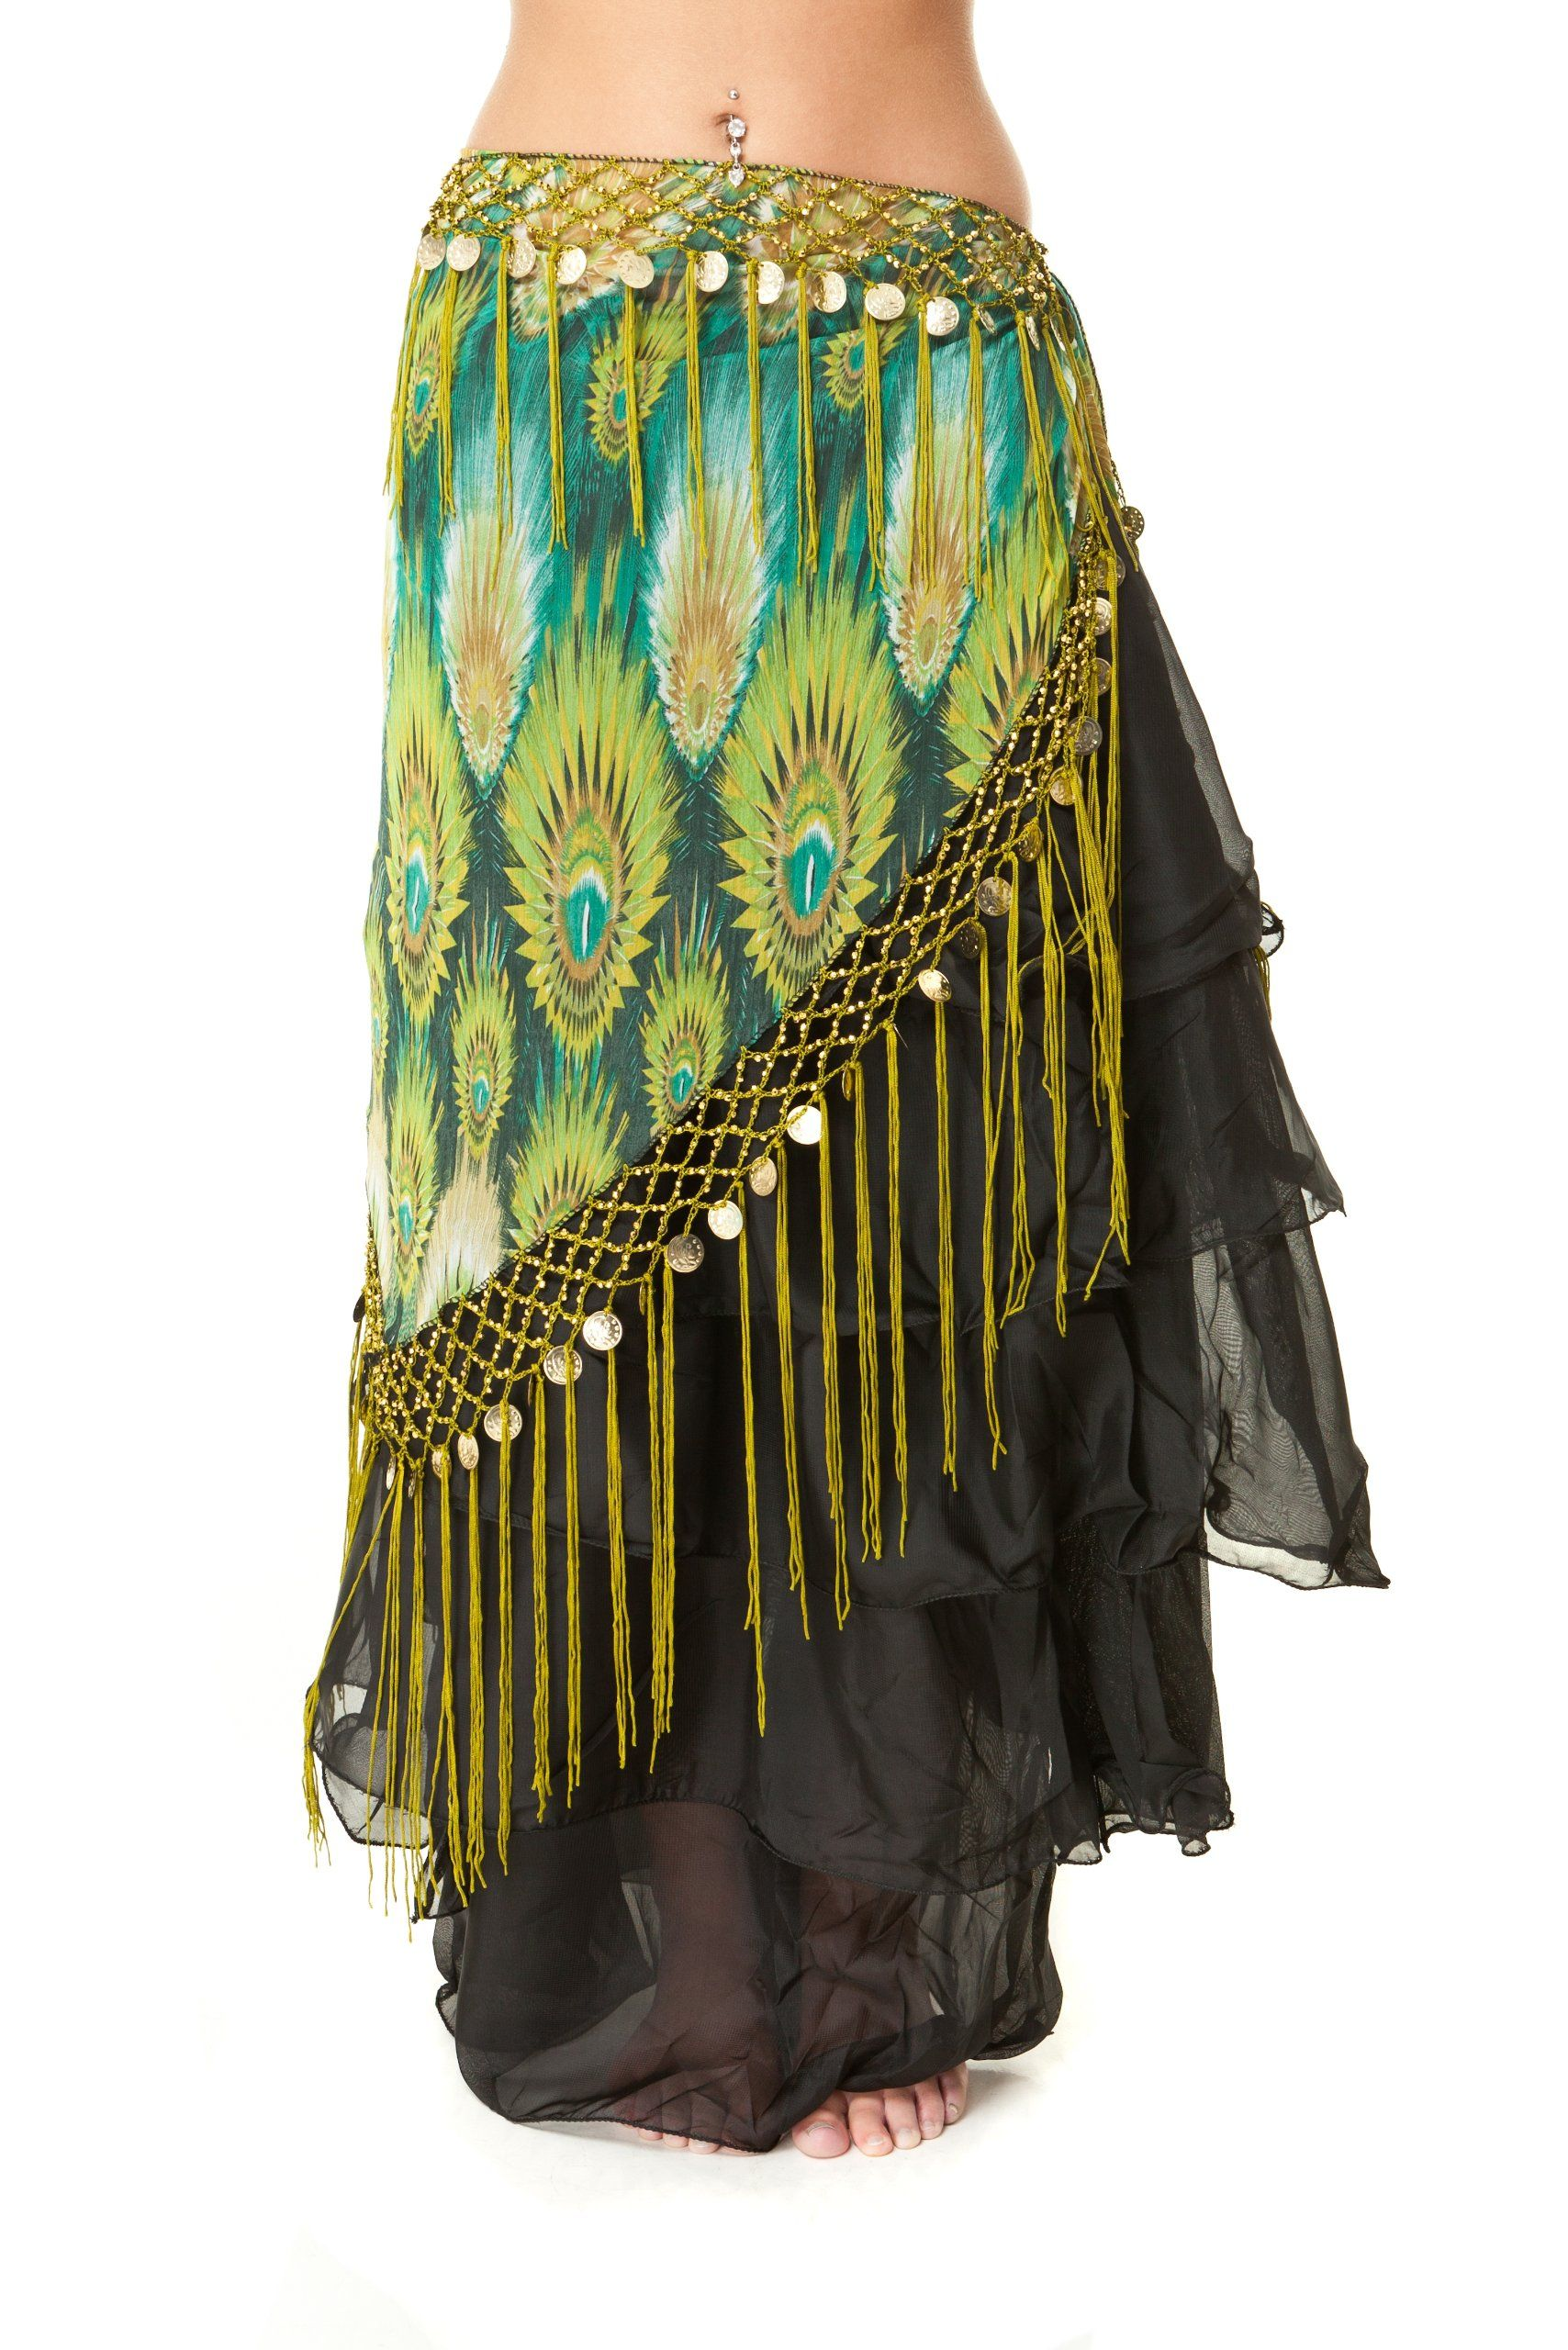 Amazon.com  Tribal Fringe Fusion Belly Dance Hip Scarf - V Shaped ... 53457ddd9